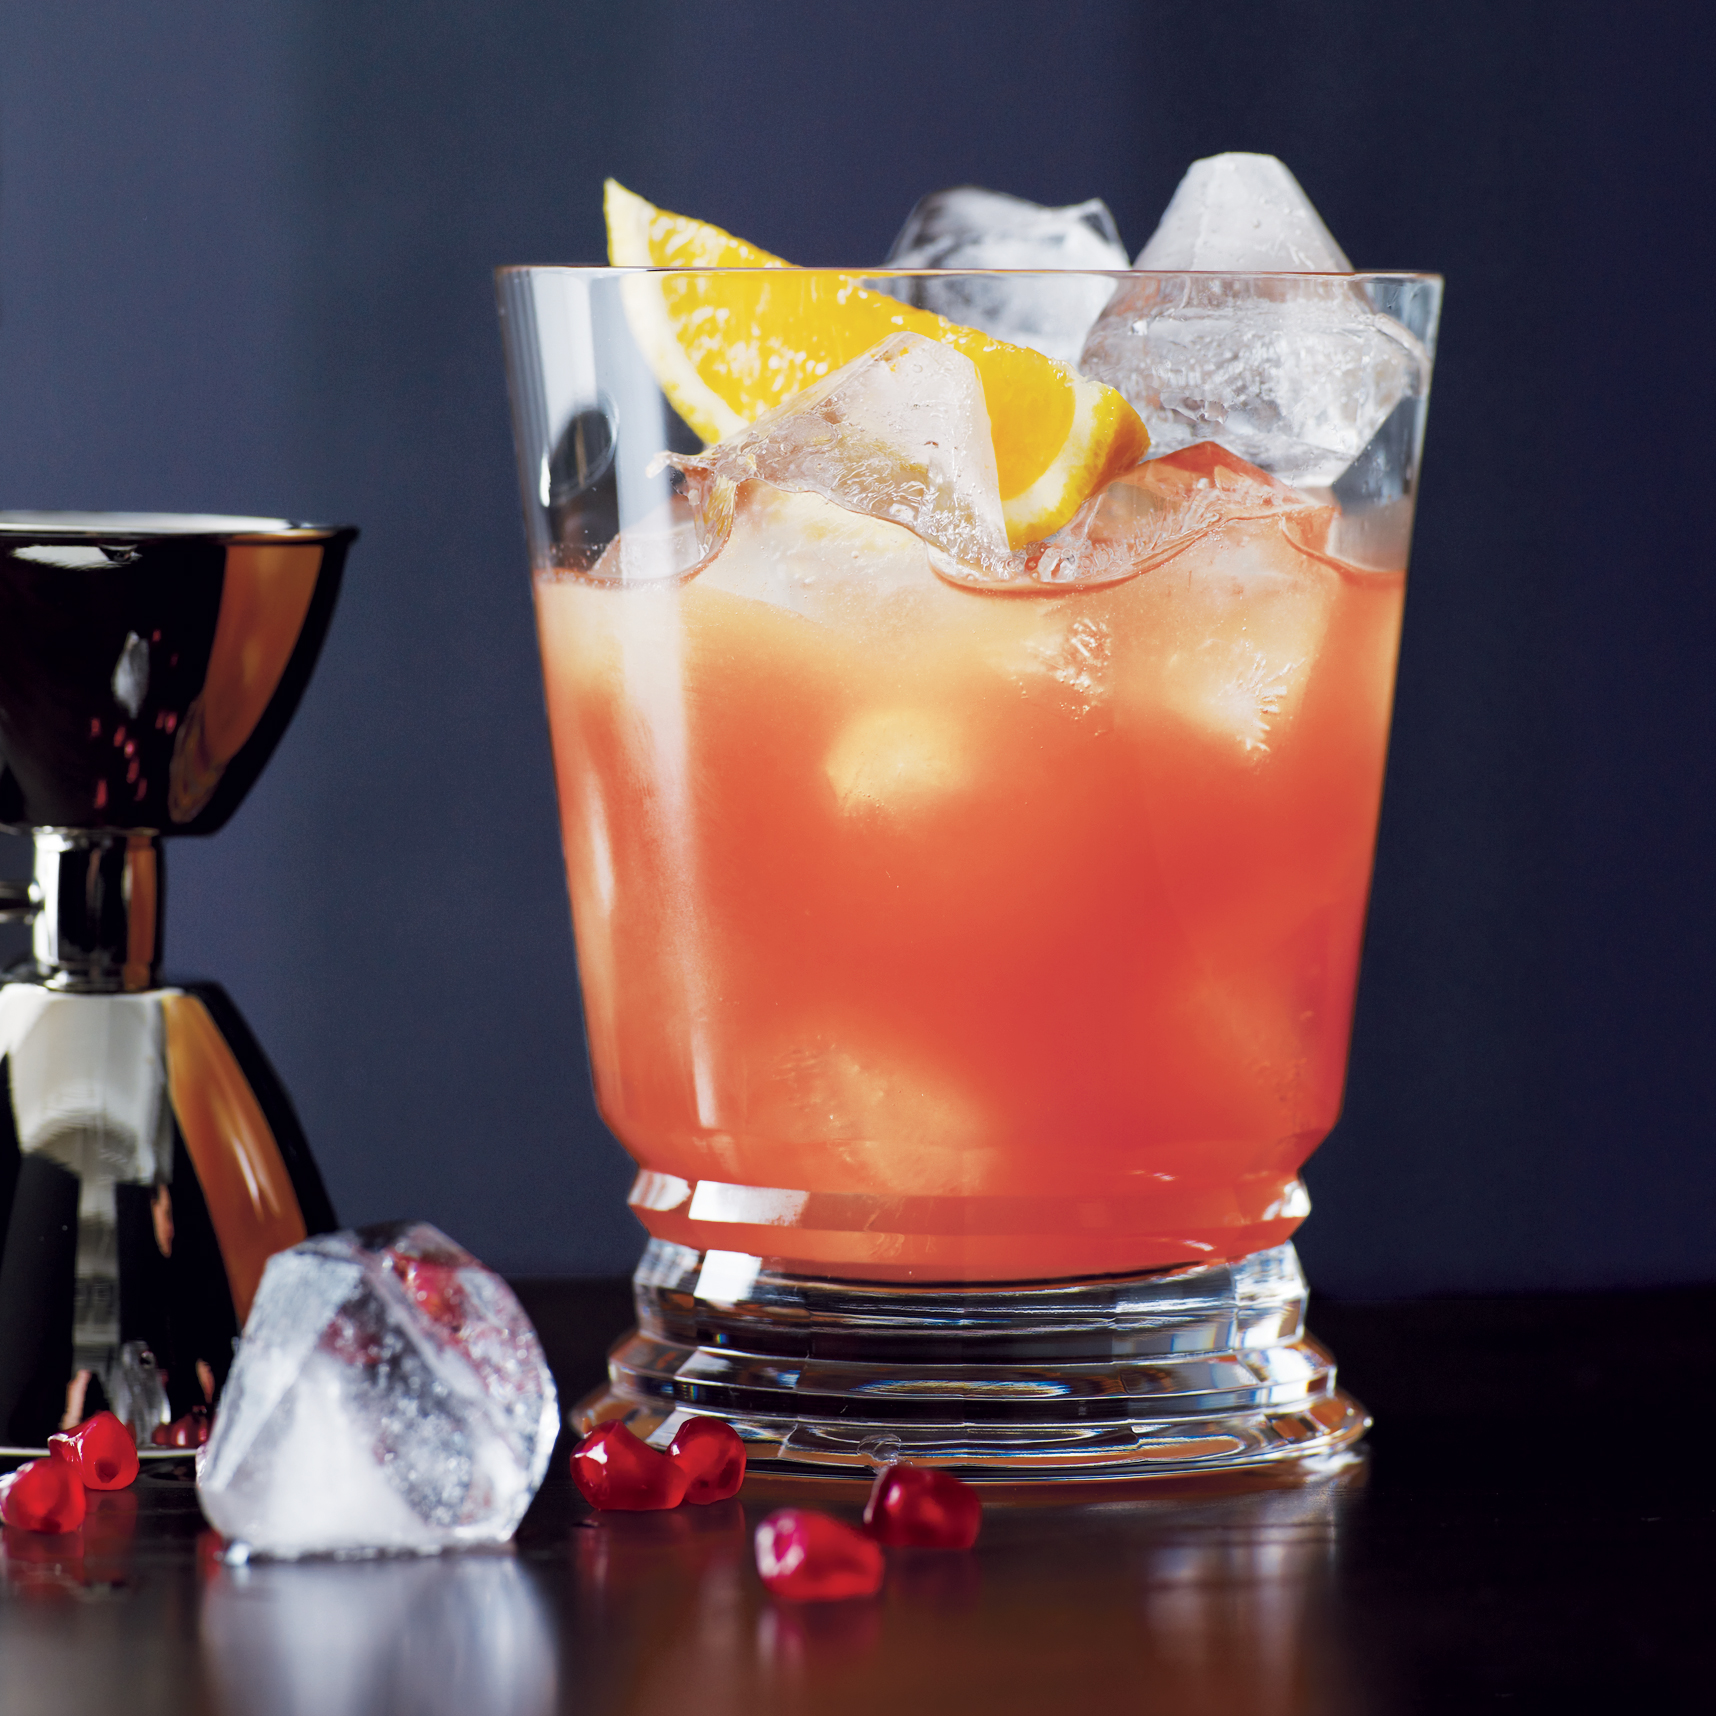 This pre-dinner drink is an orange-infused variation on the Commodore No. 2 (bourbon, crème de cacao, lemon juice, and grenadine) from the Old Waldorf-Astoria Bar Book.